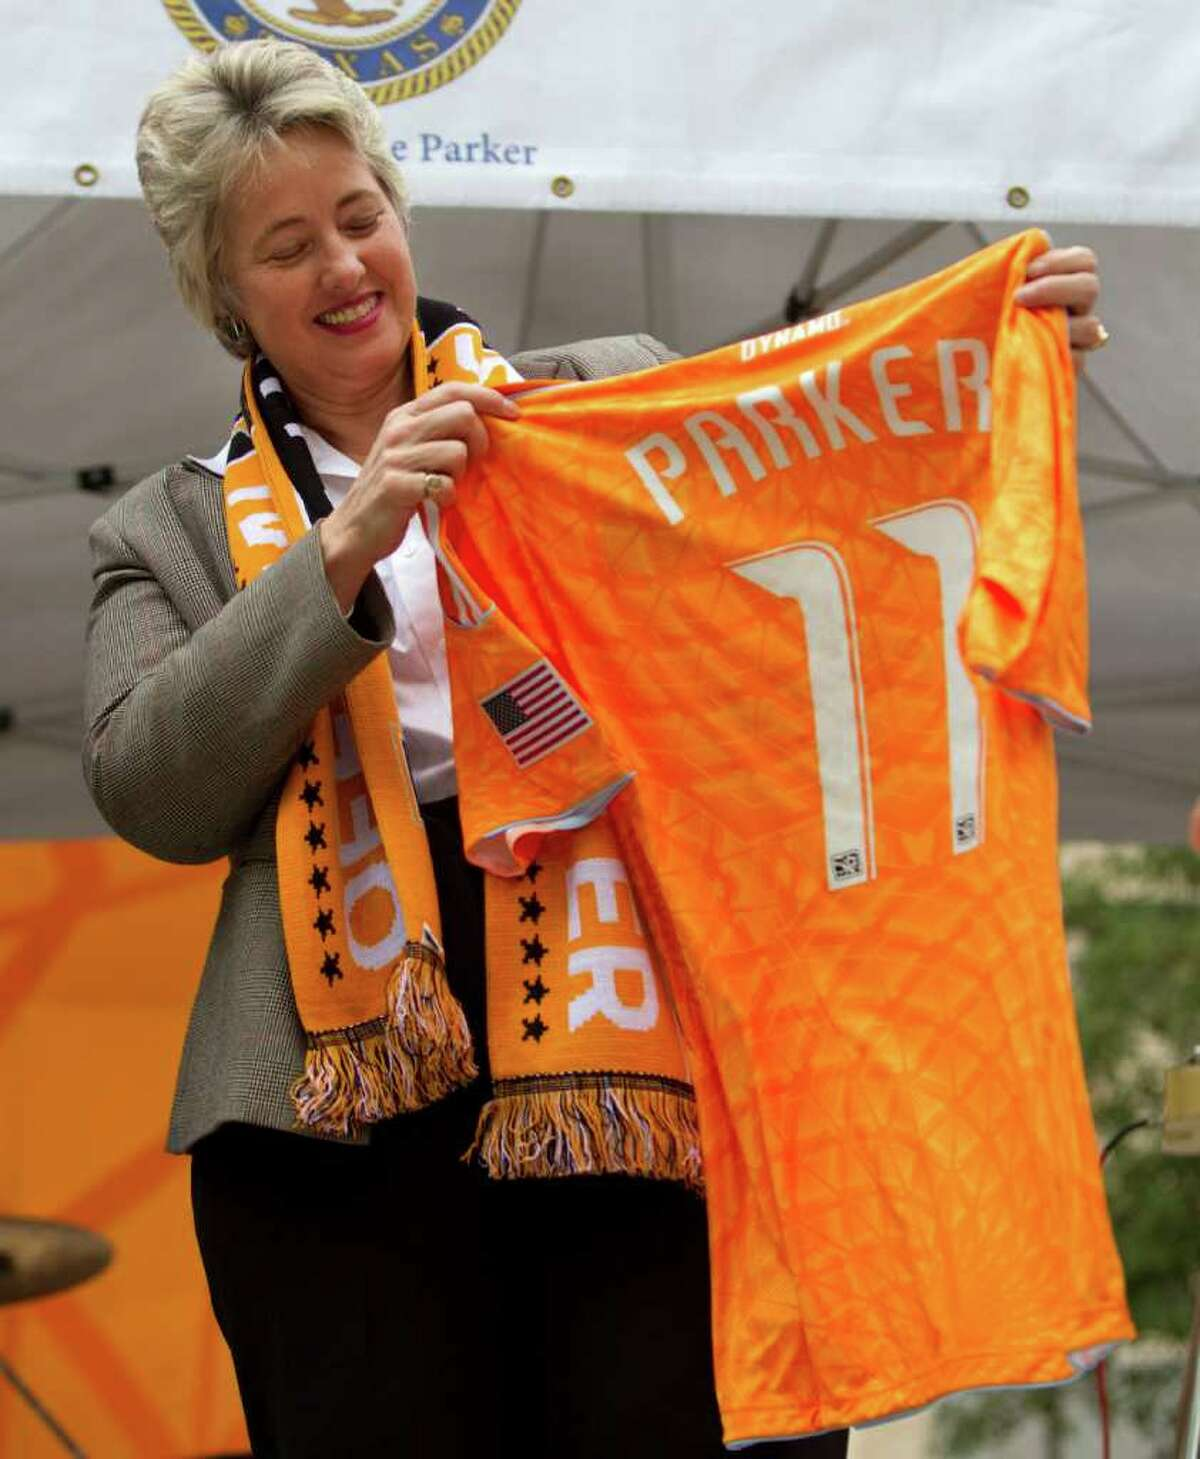 Mayor Annise Paker holds up a Houston Dynamo jersey during a playoff rally for the soccer team on the front steps of City Hall Wednesday, Nov. 2, 2011, in Houston. The mayor urged Houstonians to cheer on the Dynamo in its MLS playoff match Thursday against the Philadelphia Union.